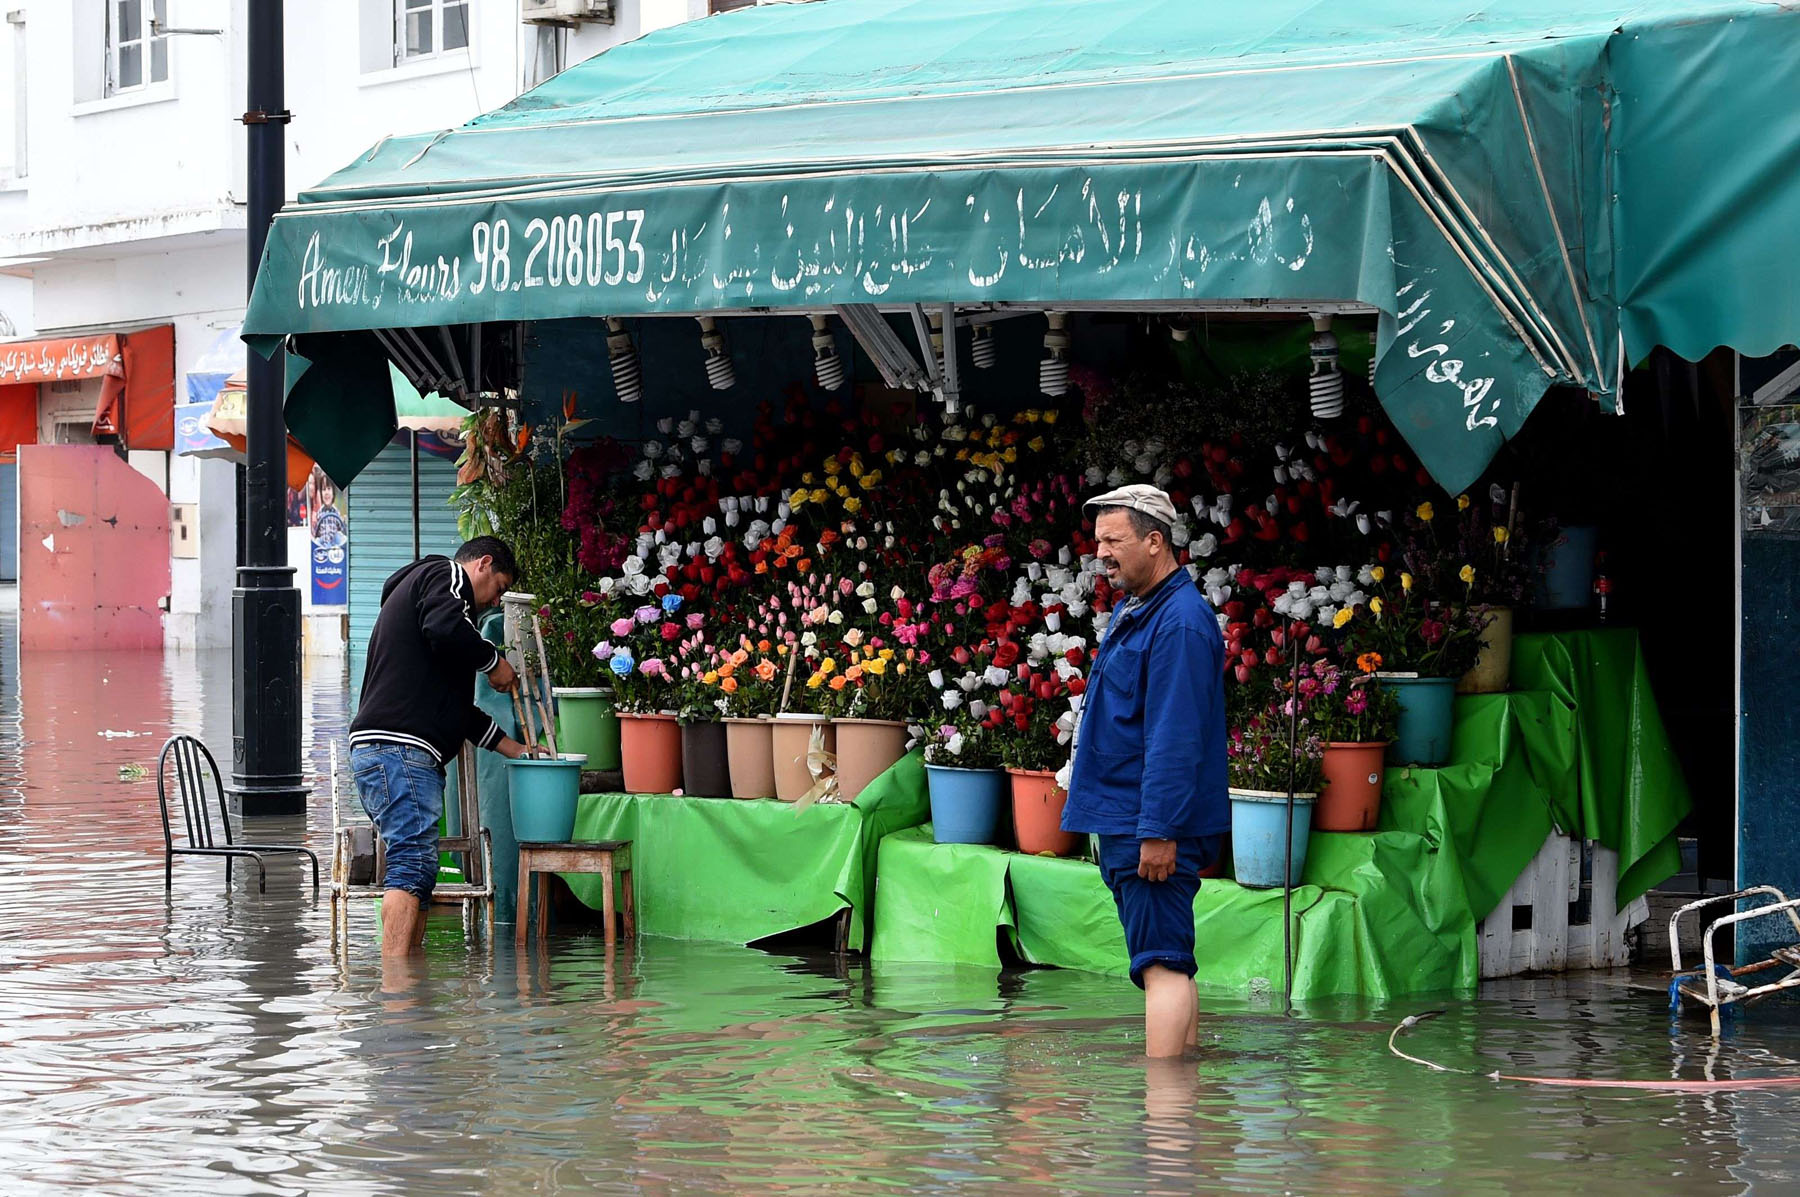 A file picture shows a flower shop owner stranded in a street flooded by torrential rains in the Tunisian capital Tunis. (AFP)